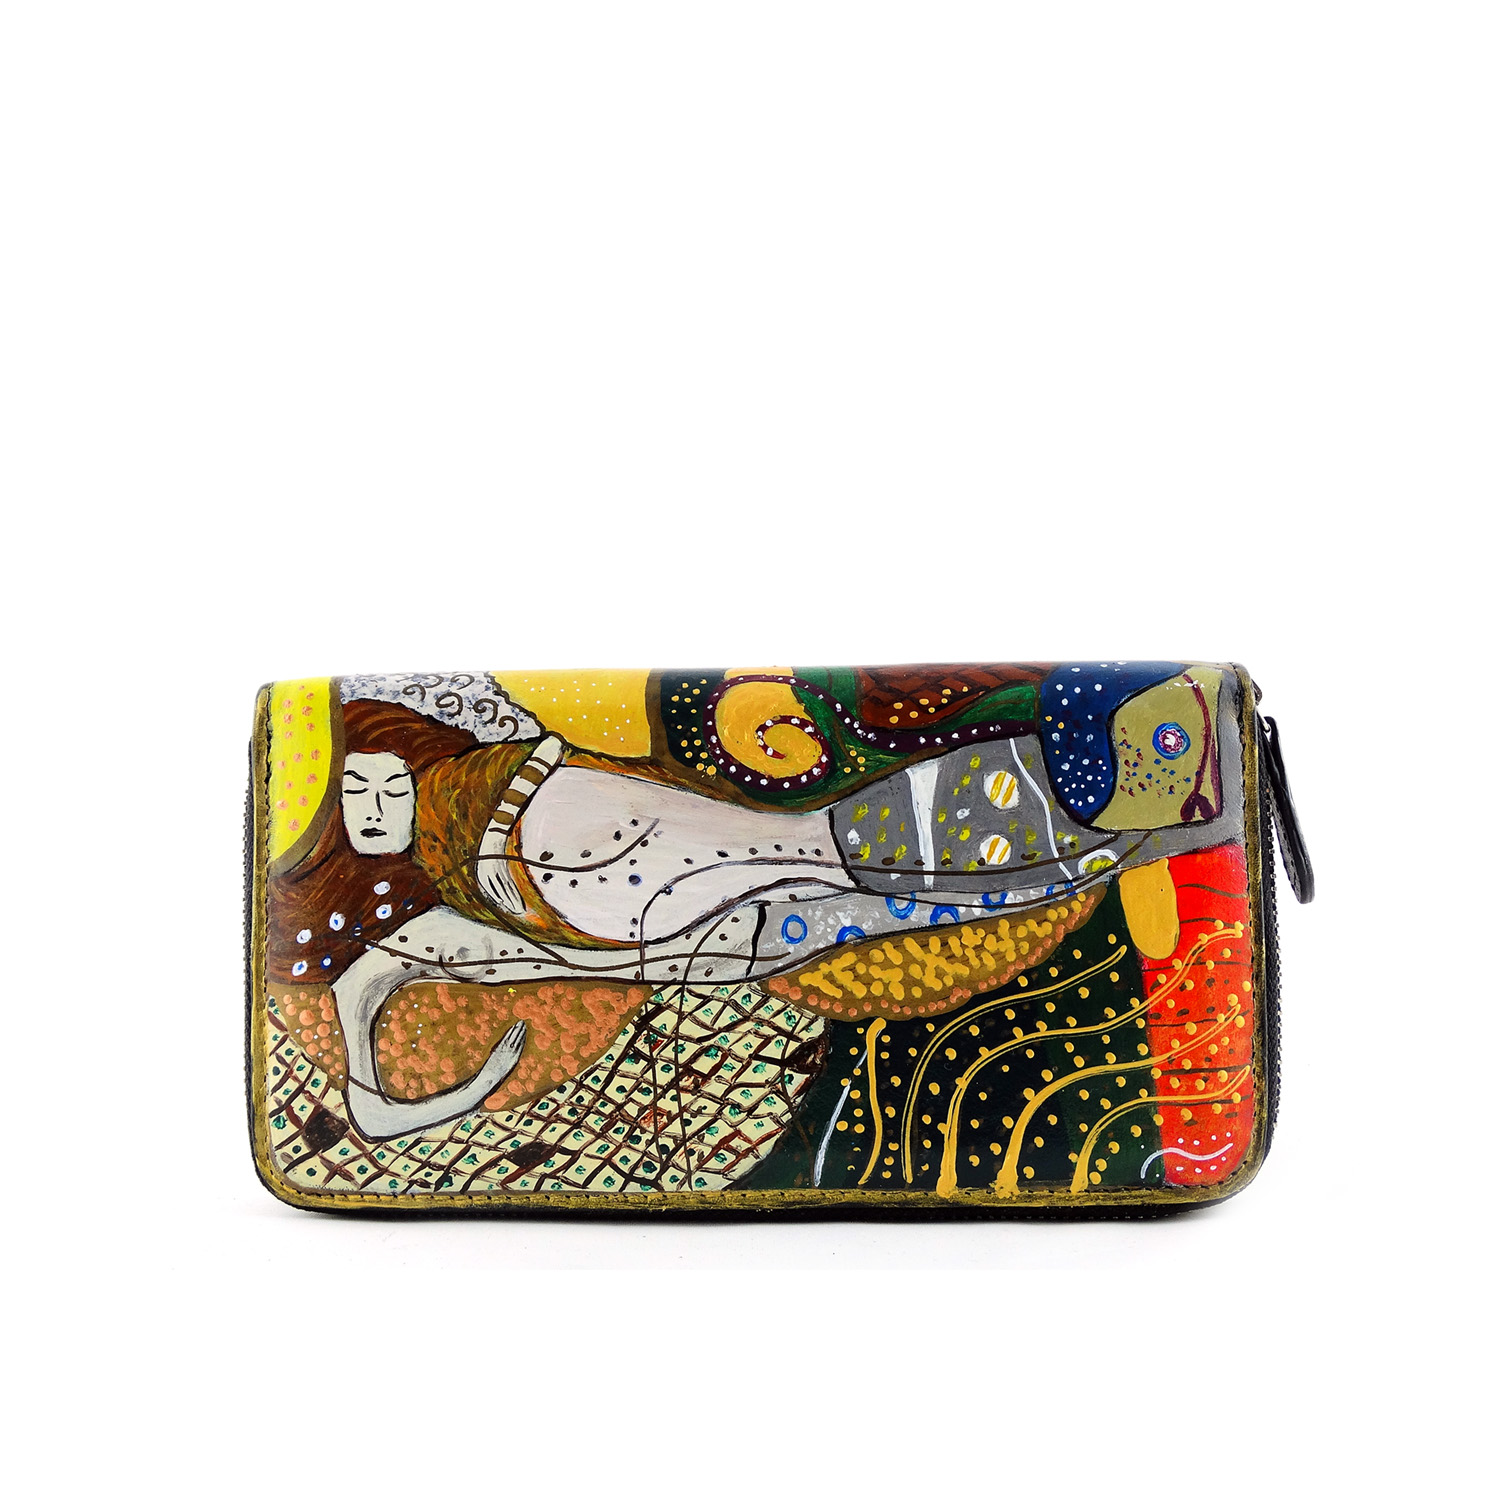 Hand painted wallet - Water Snakes by Klimt